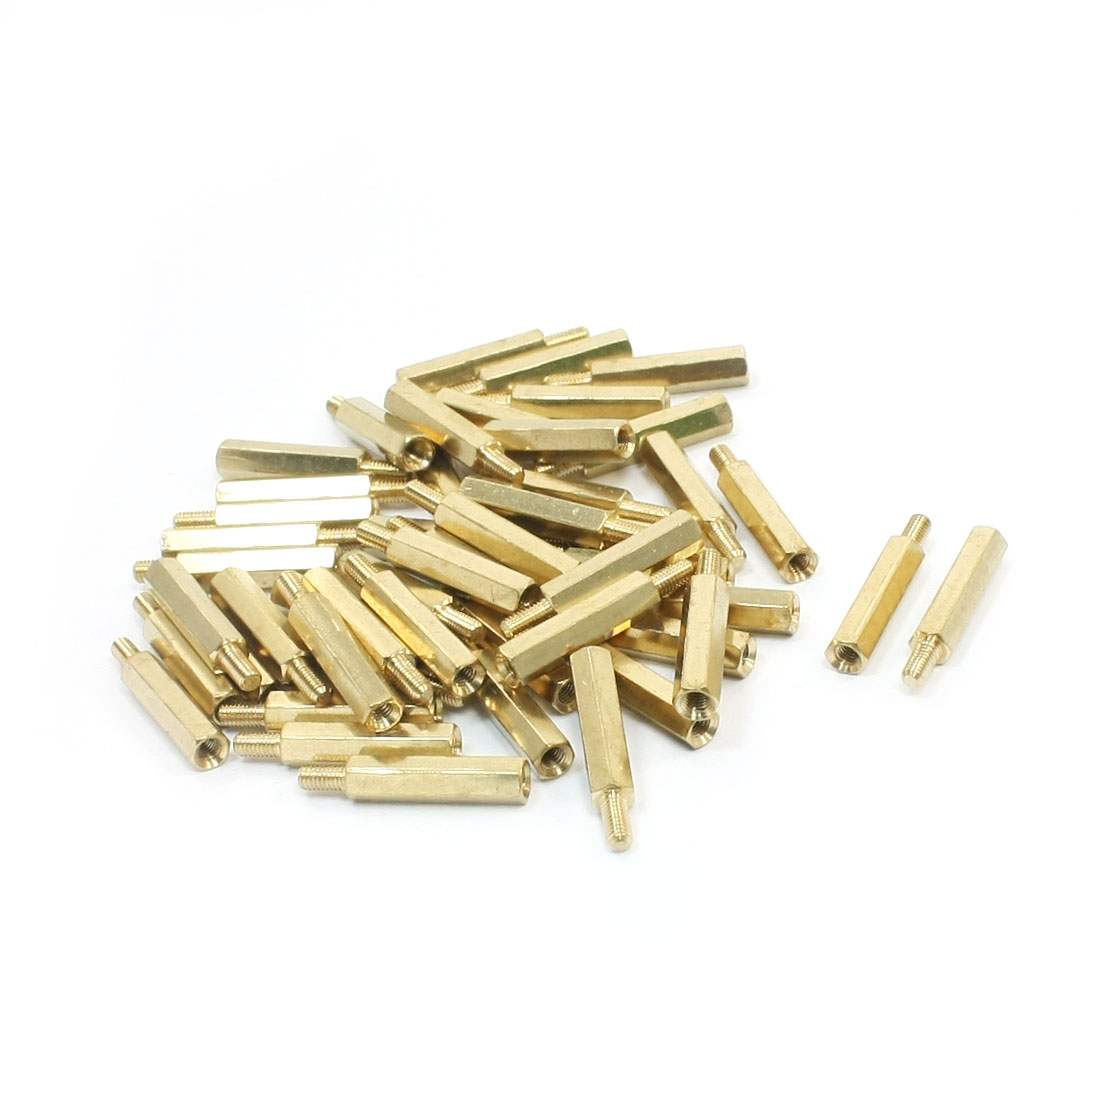 50 Pcs M3 x 20mm x 26mm Male to Female Thread Gold Tone Brass Pillar PCB Hexagon Standoff Spacer